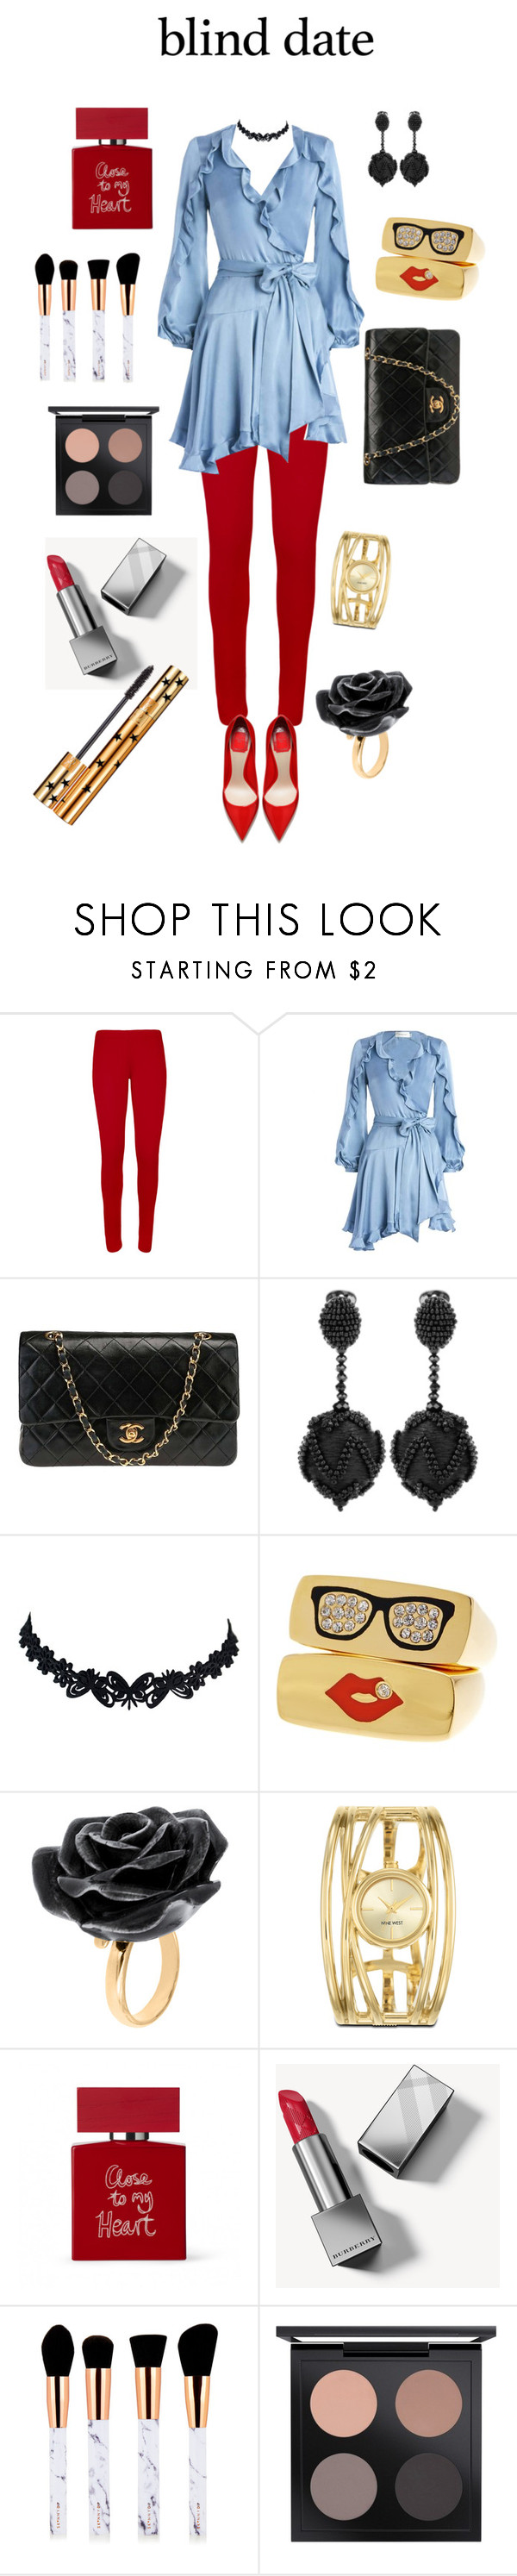 """Close to My Heart"" by danabuchmiller ❤ liked on Polyvore featuring WearAll, Zimmermann, Chanel, Oscar de la Renta, Nach Bijoux, Nine West, Bella Freud, Burberry, MAC Cosmetics and Yves Saint Laurent"